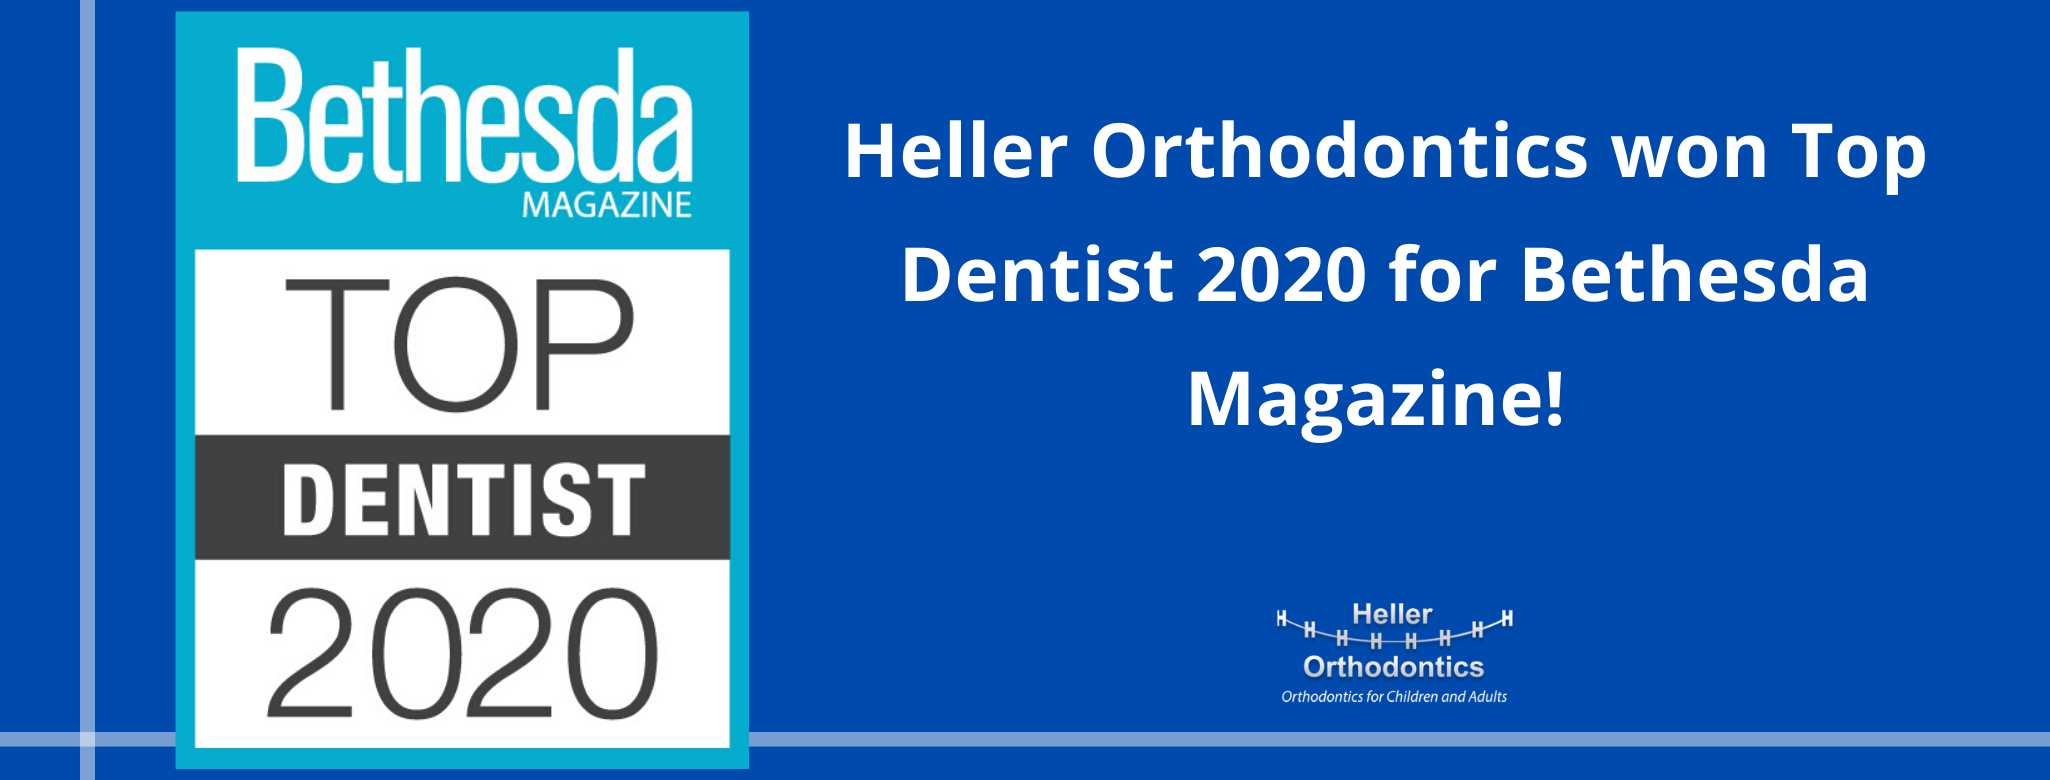 Heller Orthodontics won Top Dentist 2020 for Bethesda Magazine!